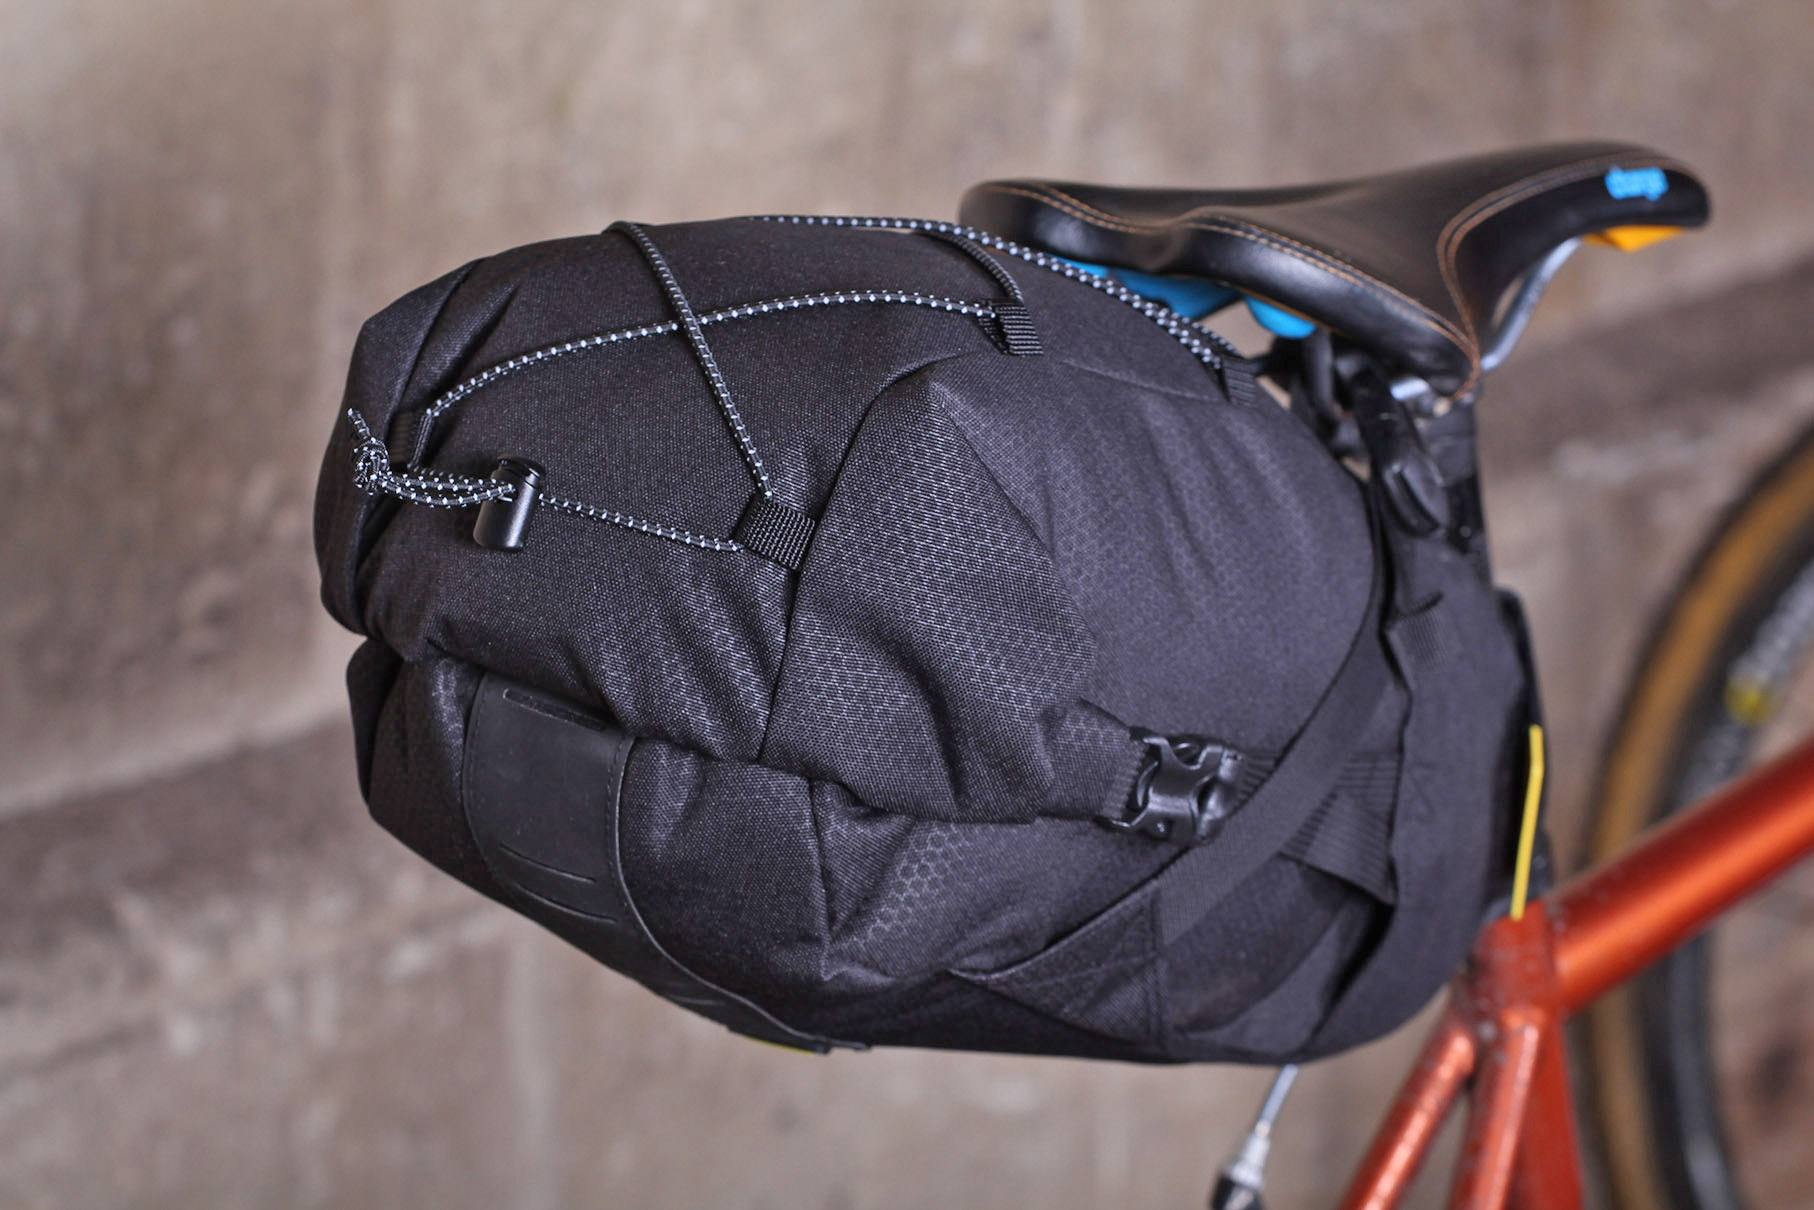 ad1a58cabab718 Review: Topeak BackLoader 10L seat pack | road.cc